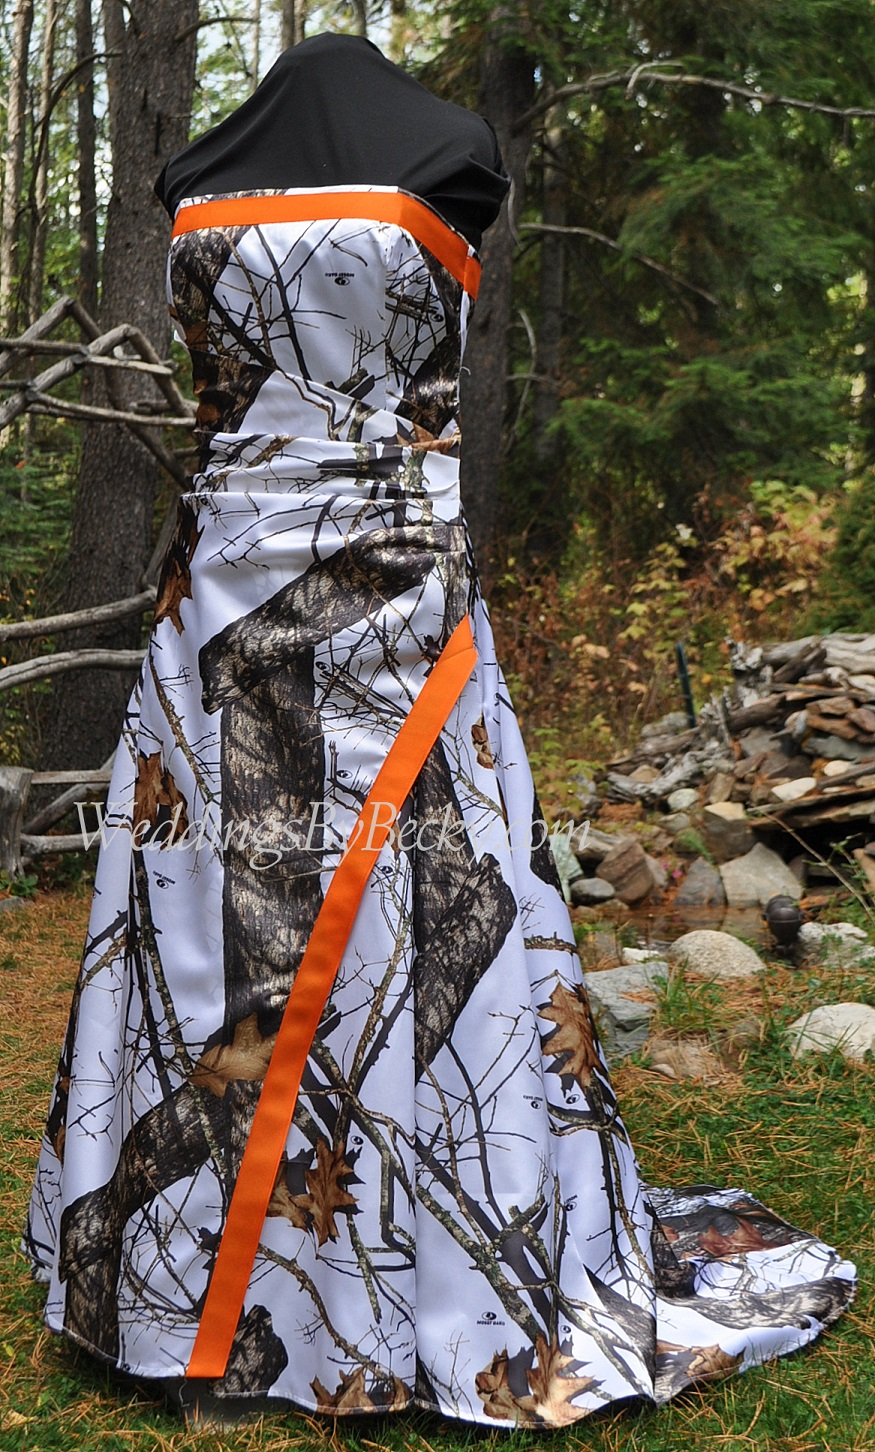 blog white camo wedding dress Becky says that the camo trend is moving towards adding lace to the dress as well as a little bling here and there Ribbons and trimmings in orange or